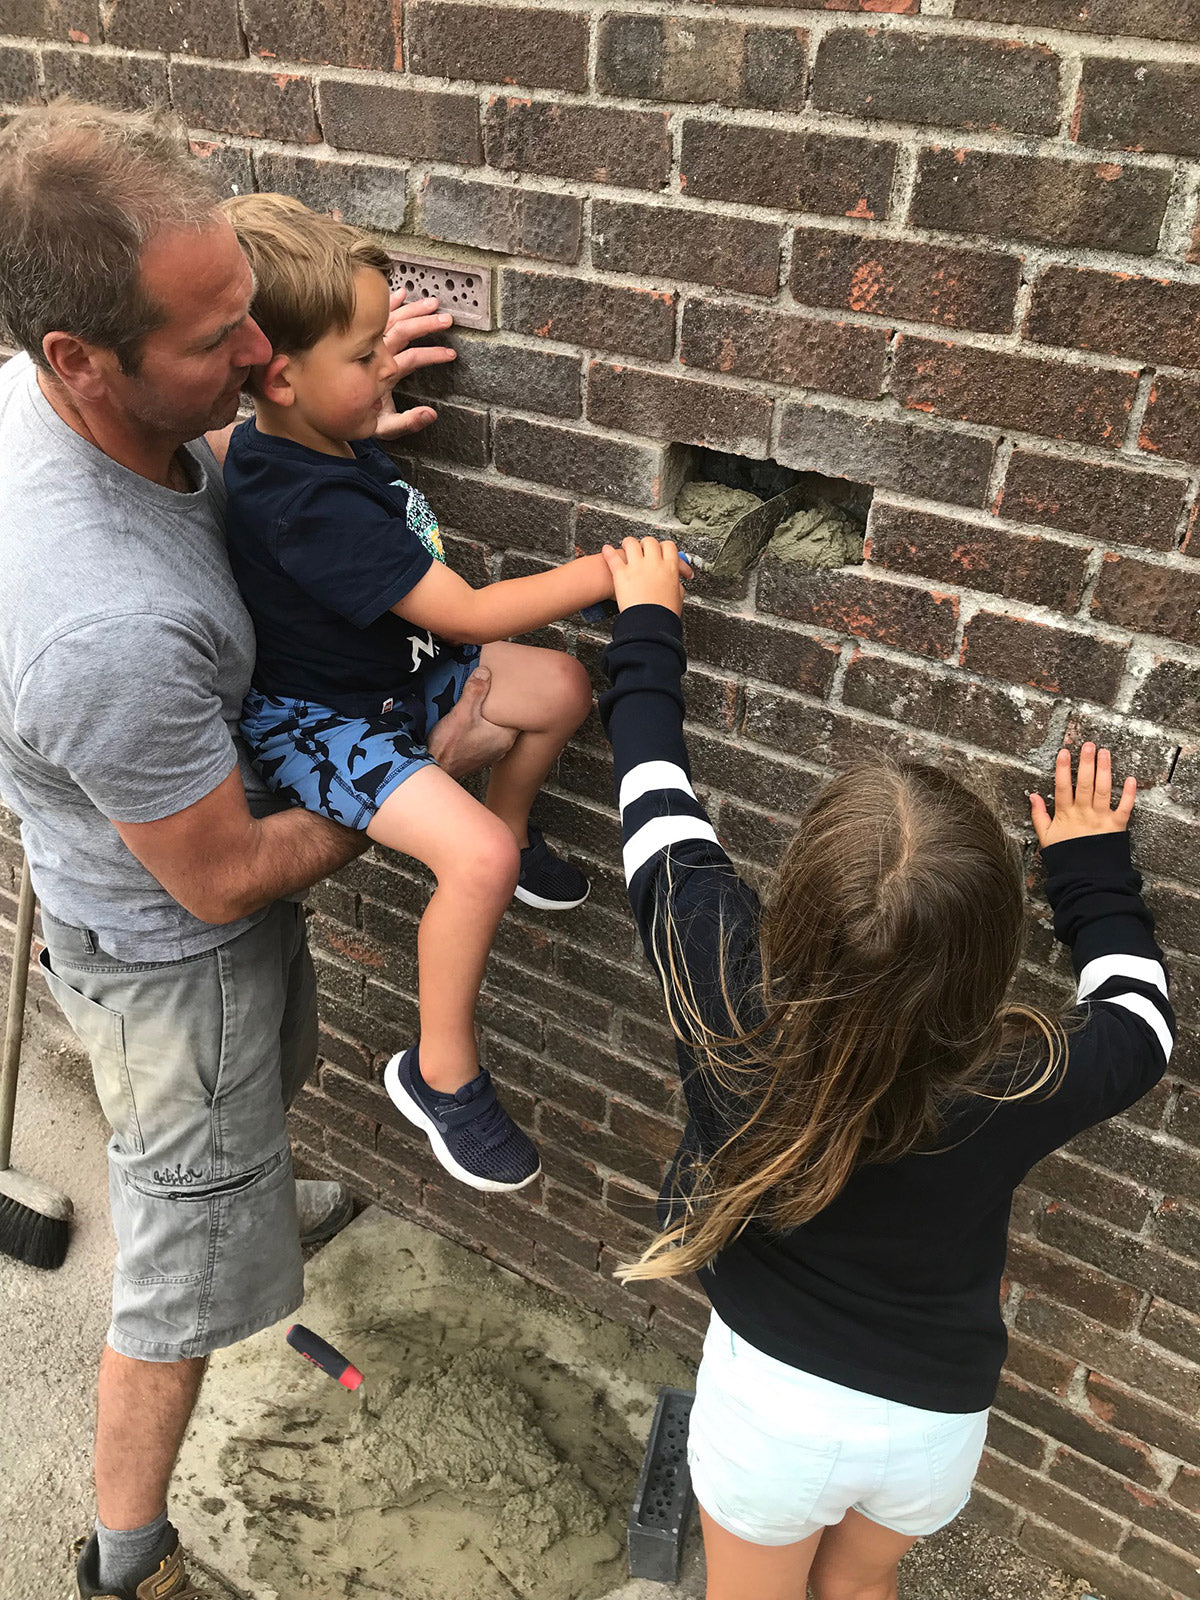 Installing a bee brick into brick wall